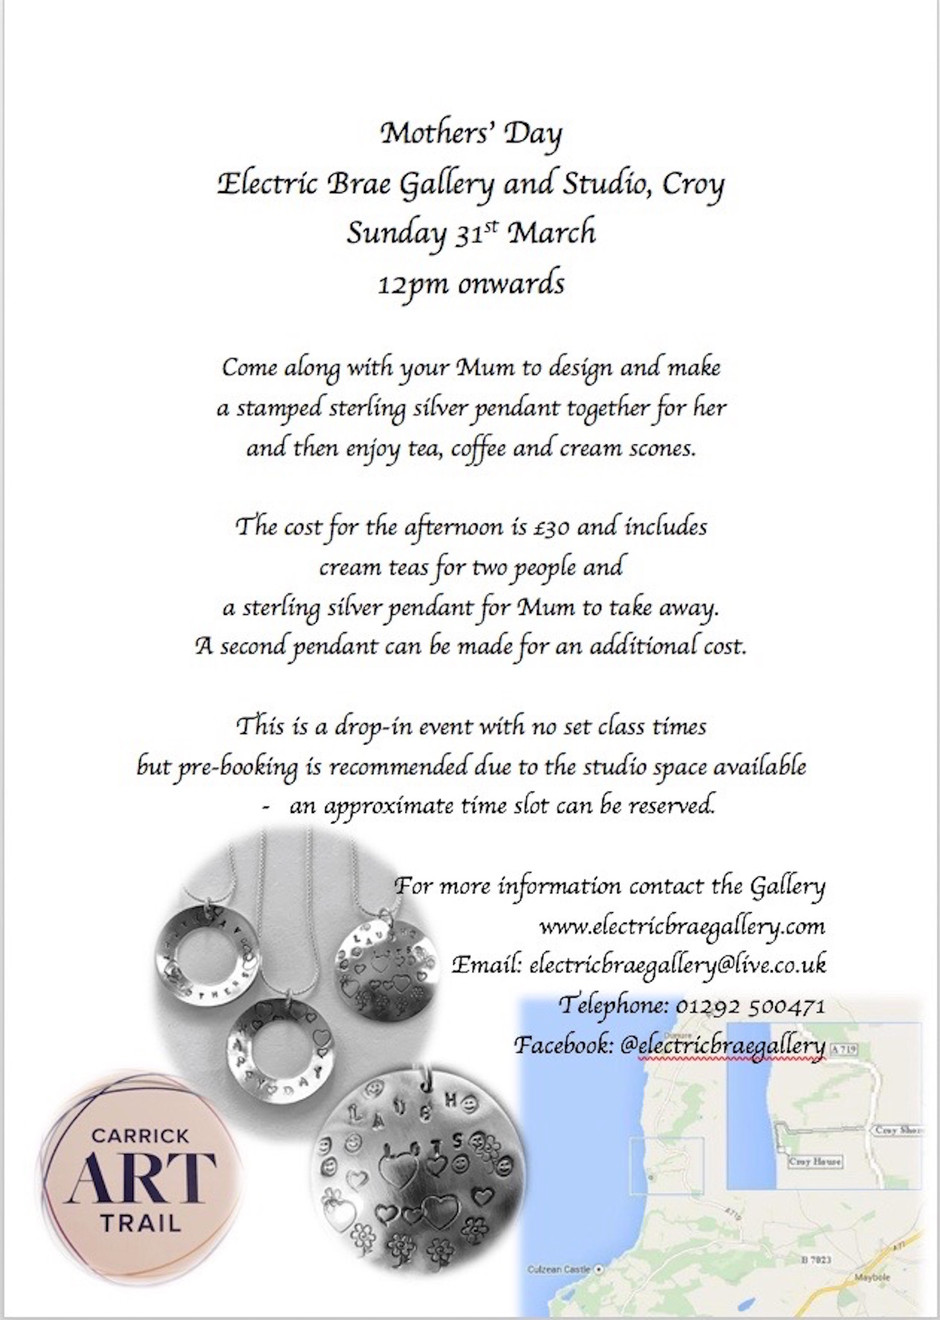 Silver Pendant Workshop                 Sunday 31st March